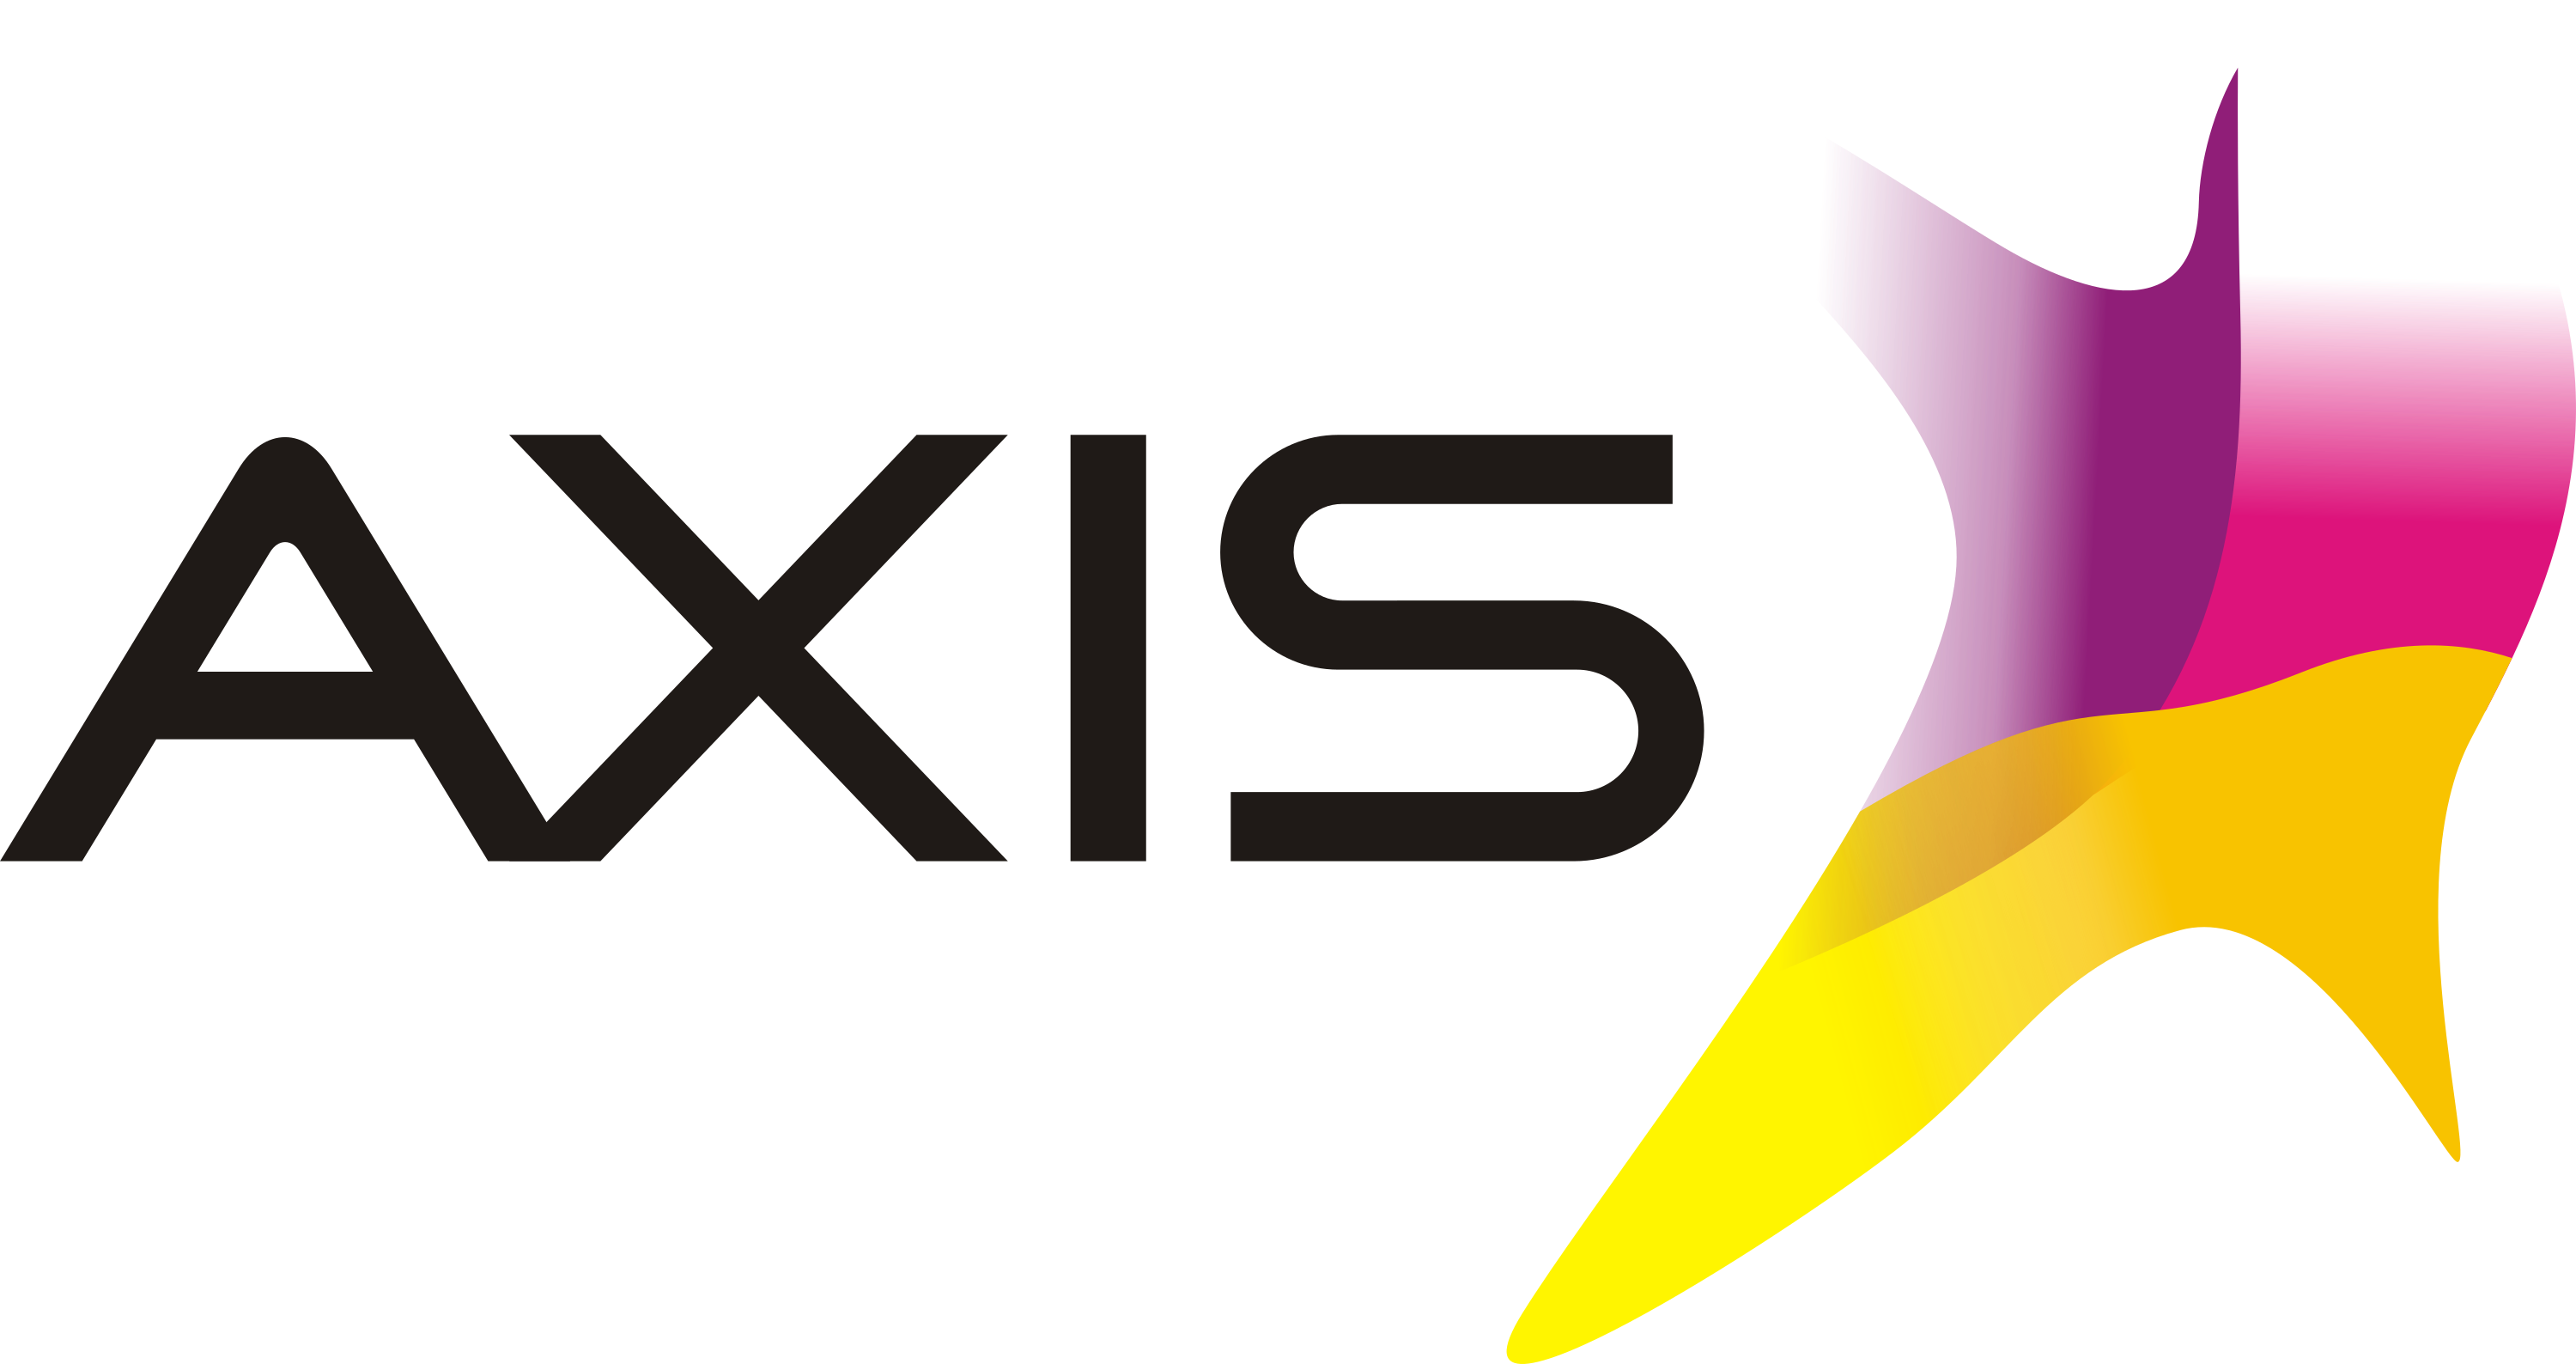 File:Axis logo.png.